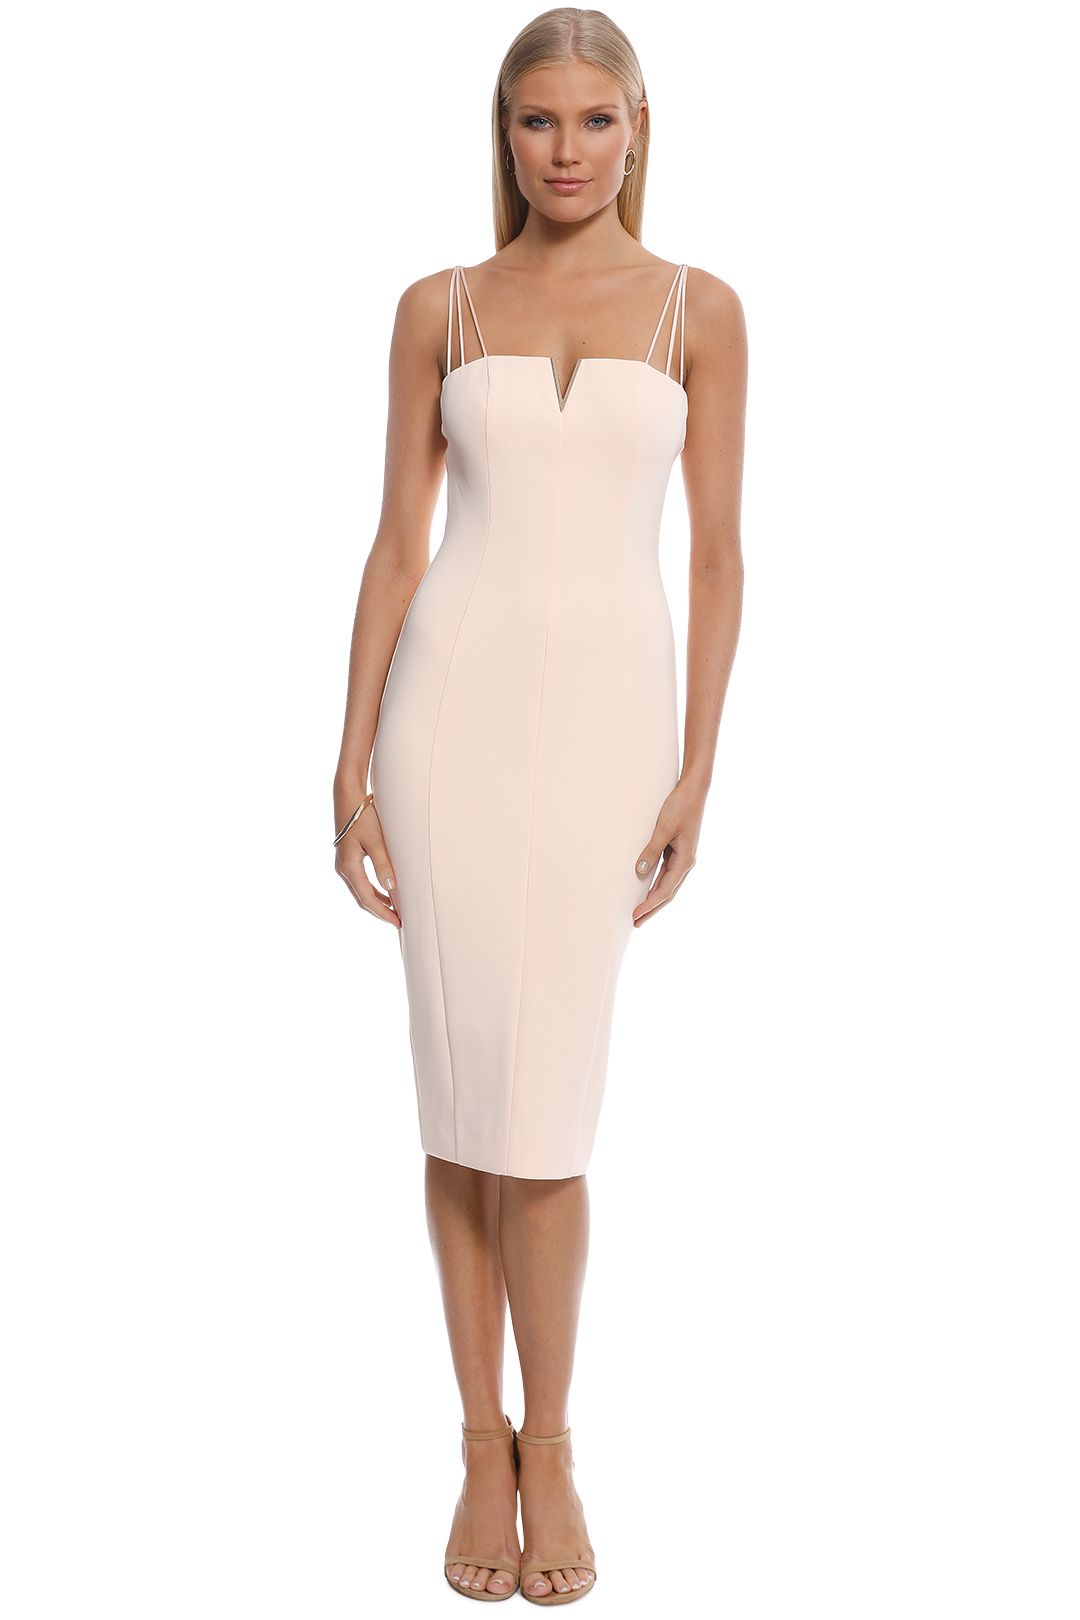 Misha Collection - Dylan Midi Dress - Blush - Front